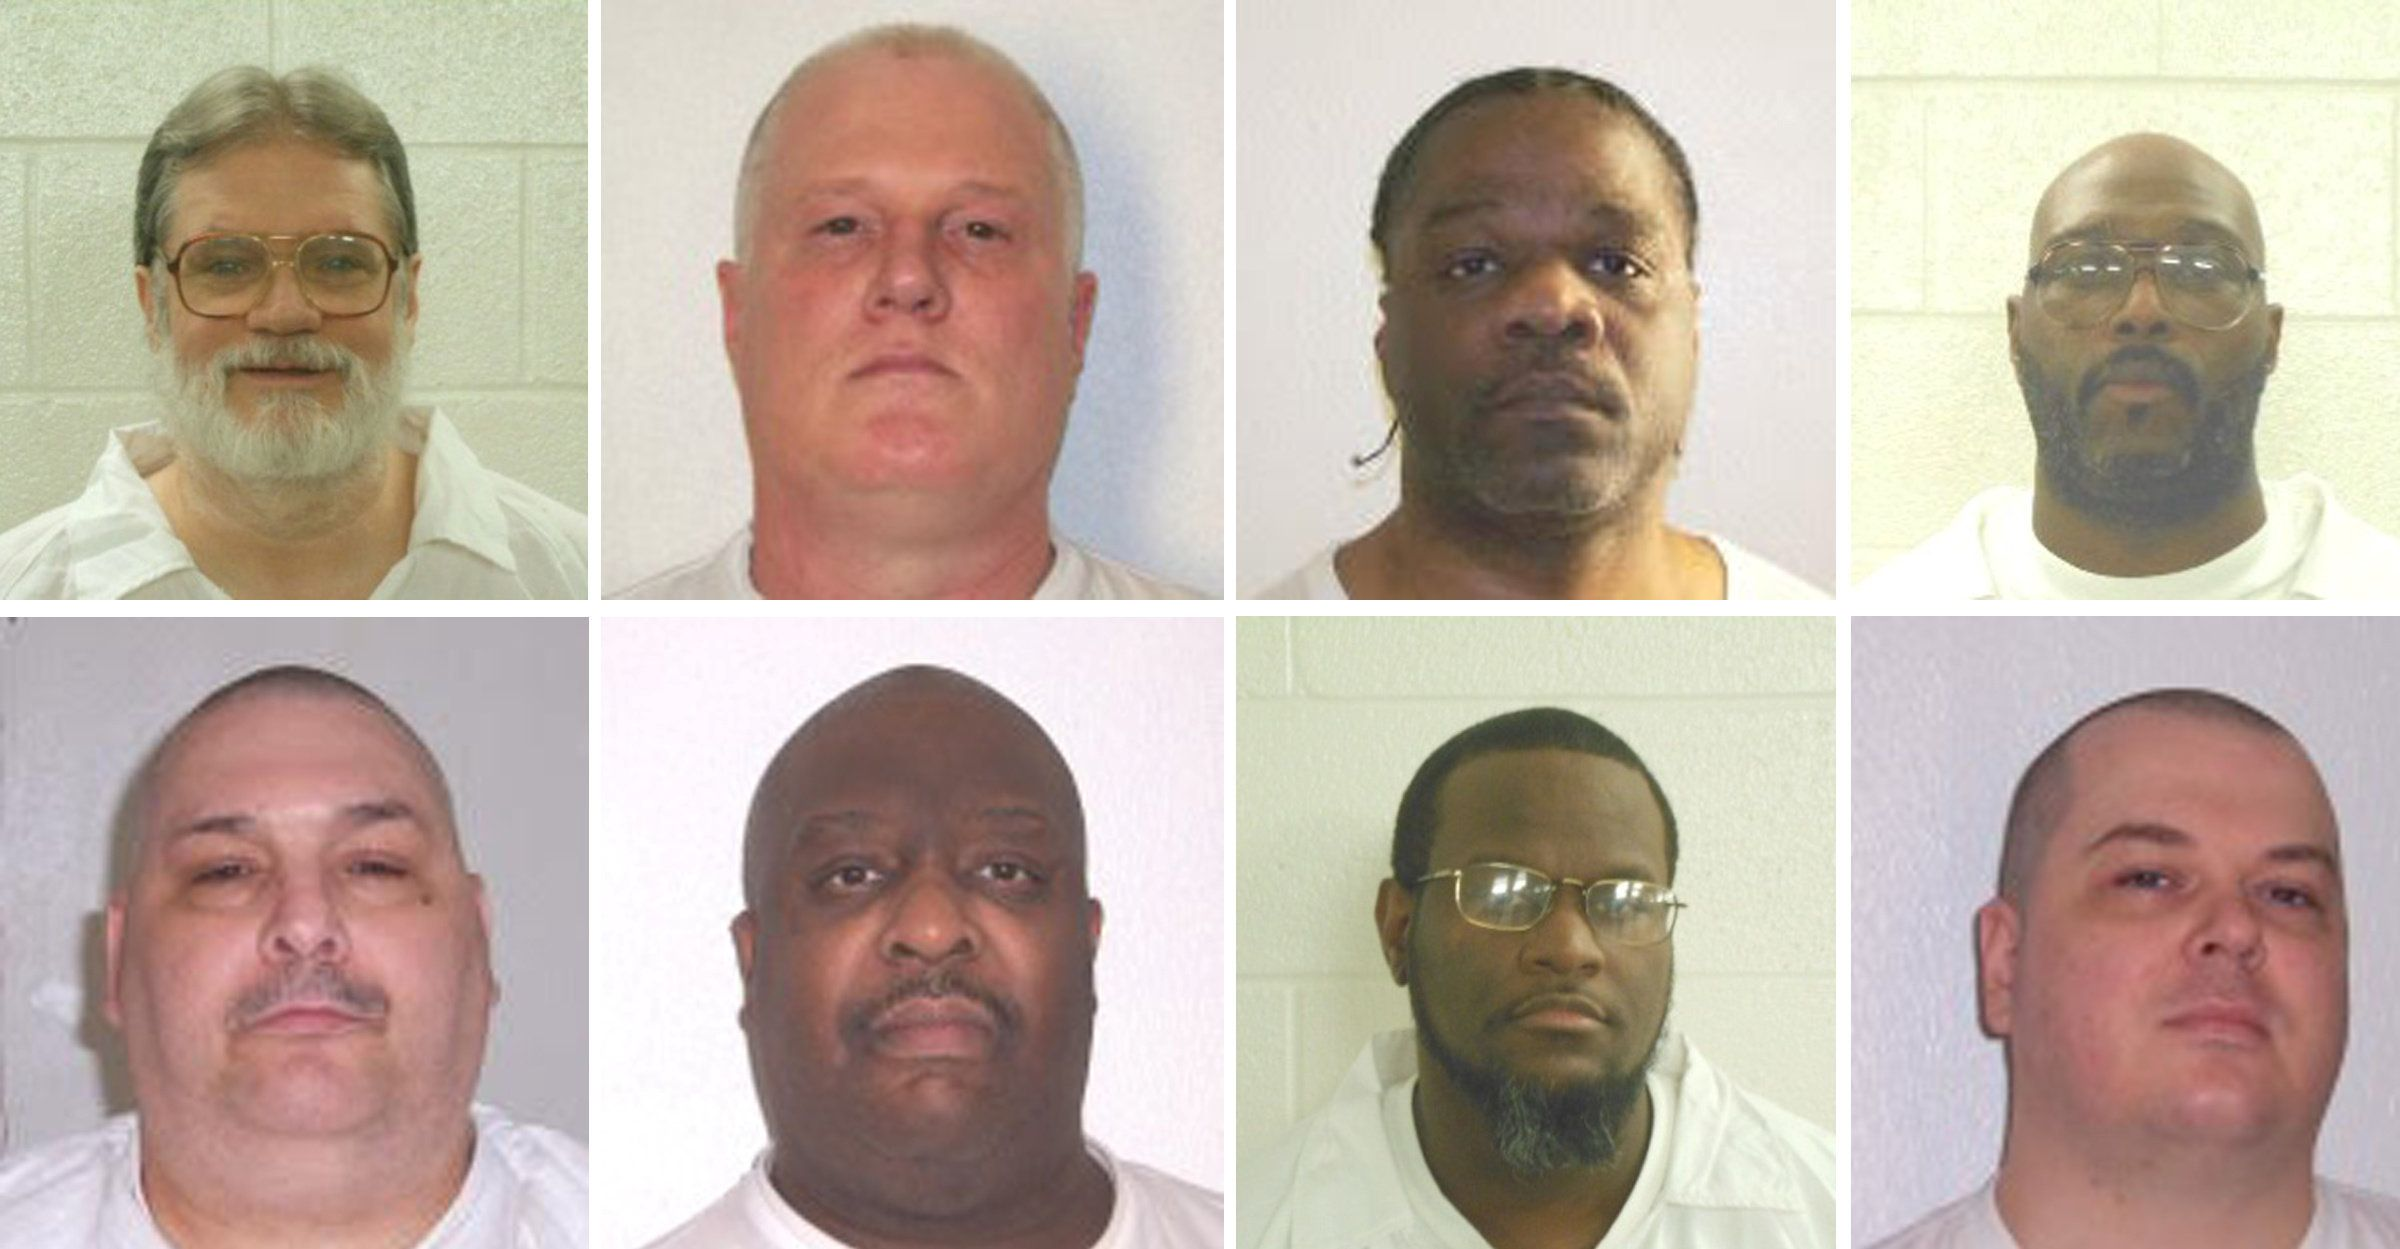 Inmates Bruce Ward(top row L to R), Don Davis, Ledell Lee, Stacy Johnson, Jack Jones (bottom row L to R), Marcel Williams, Kenneth Williams and Jason Mcgehee  are shown in these booking photo provided March 21, 2017.  The eight are scheduled to be executed by lethal injection in Arkansas, beginning April 17, 2017.    Courtesy Arkansas Department of Corrections/Handout via REUTERS  ATTENTION EDITORS - THIS IMAGE WAS PROVIDED BY A THIRD PARTY. EDITORIAL USE ONLY.